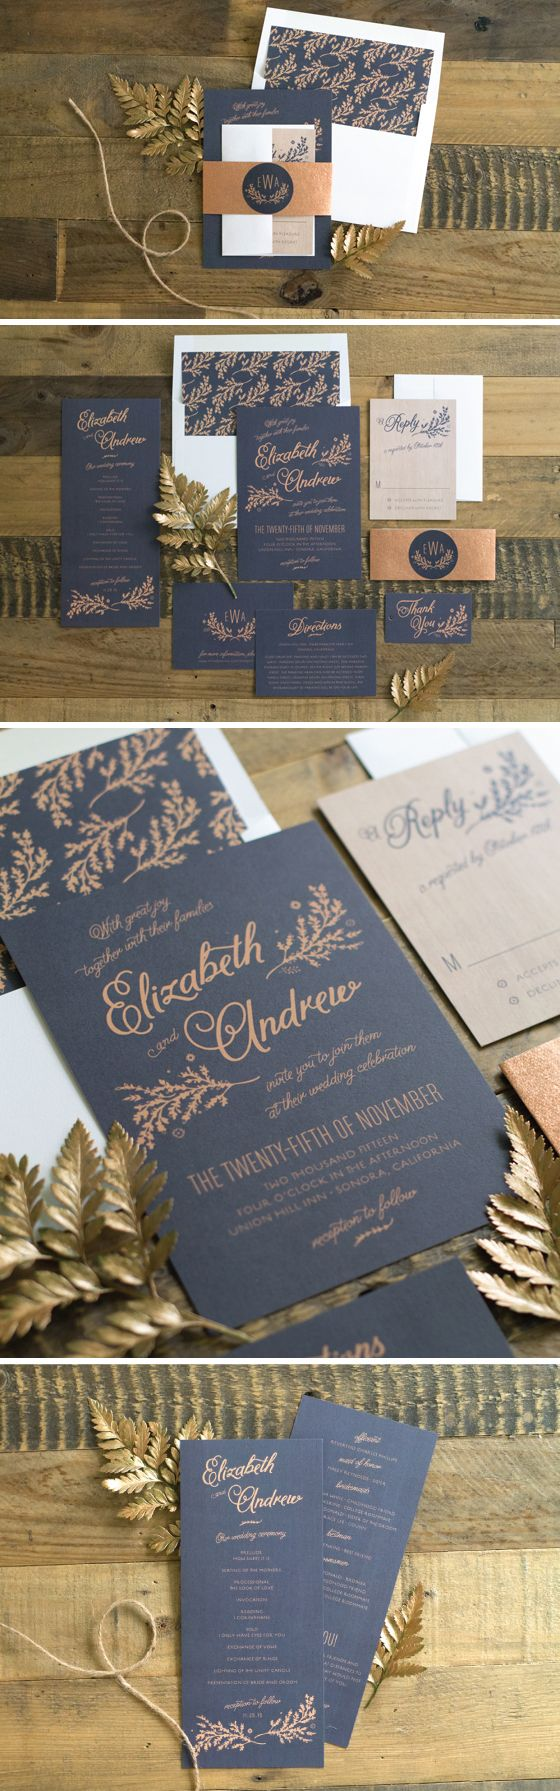 Rustic Chic Wedding Suite in Navy and Copper